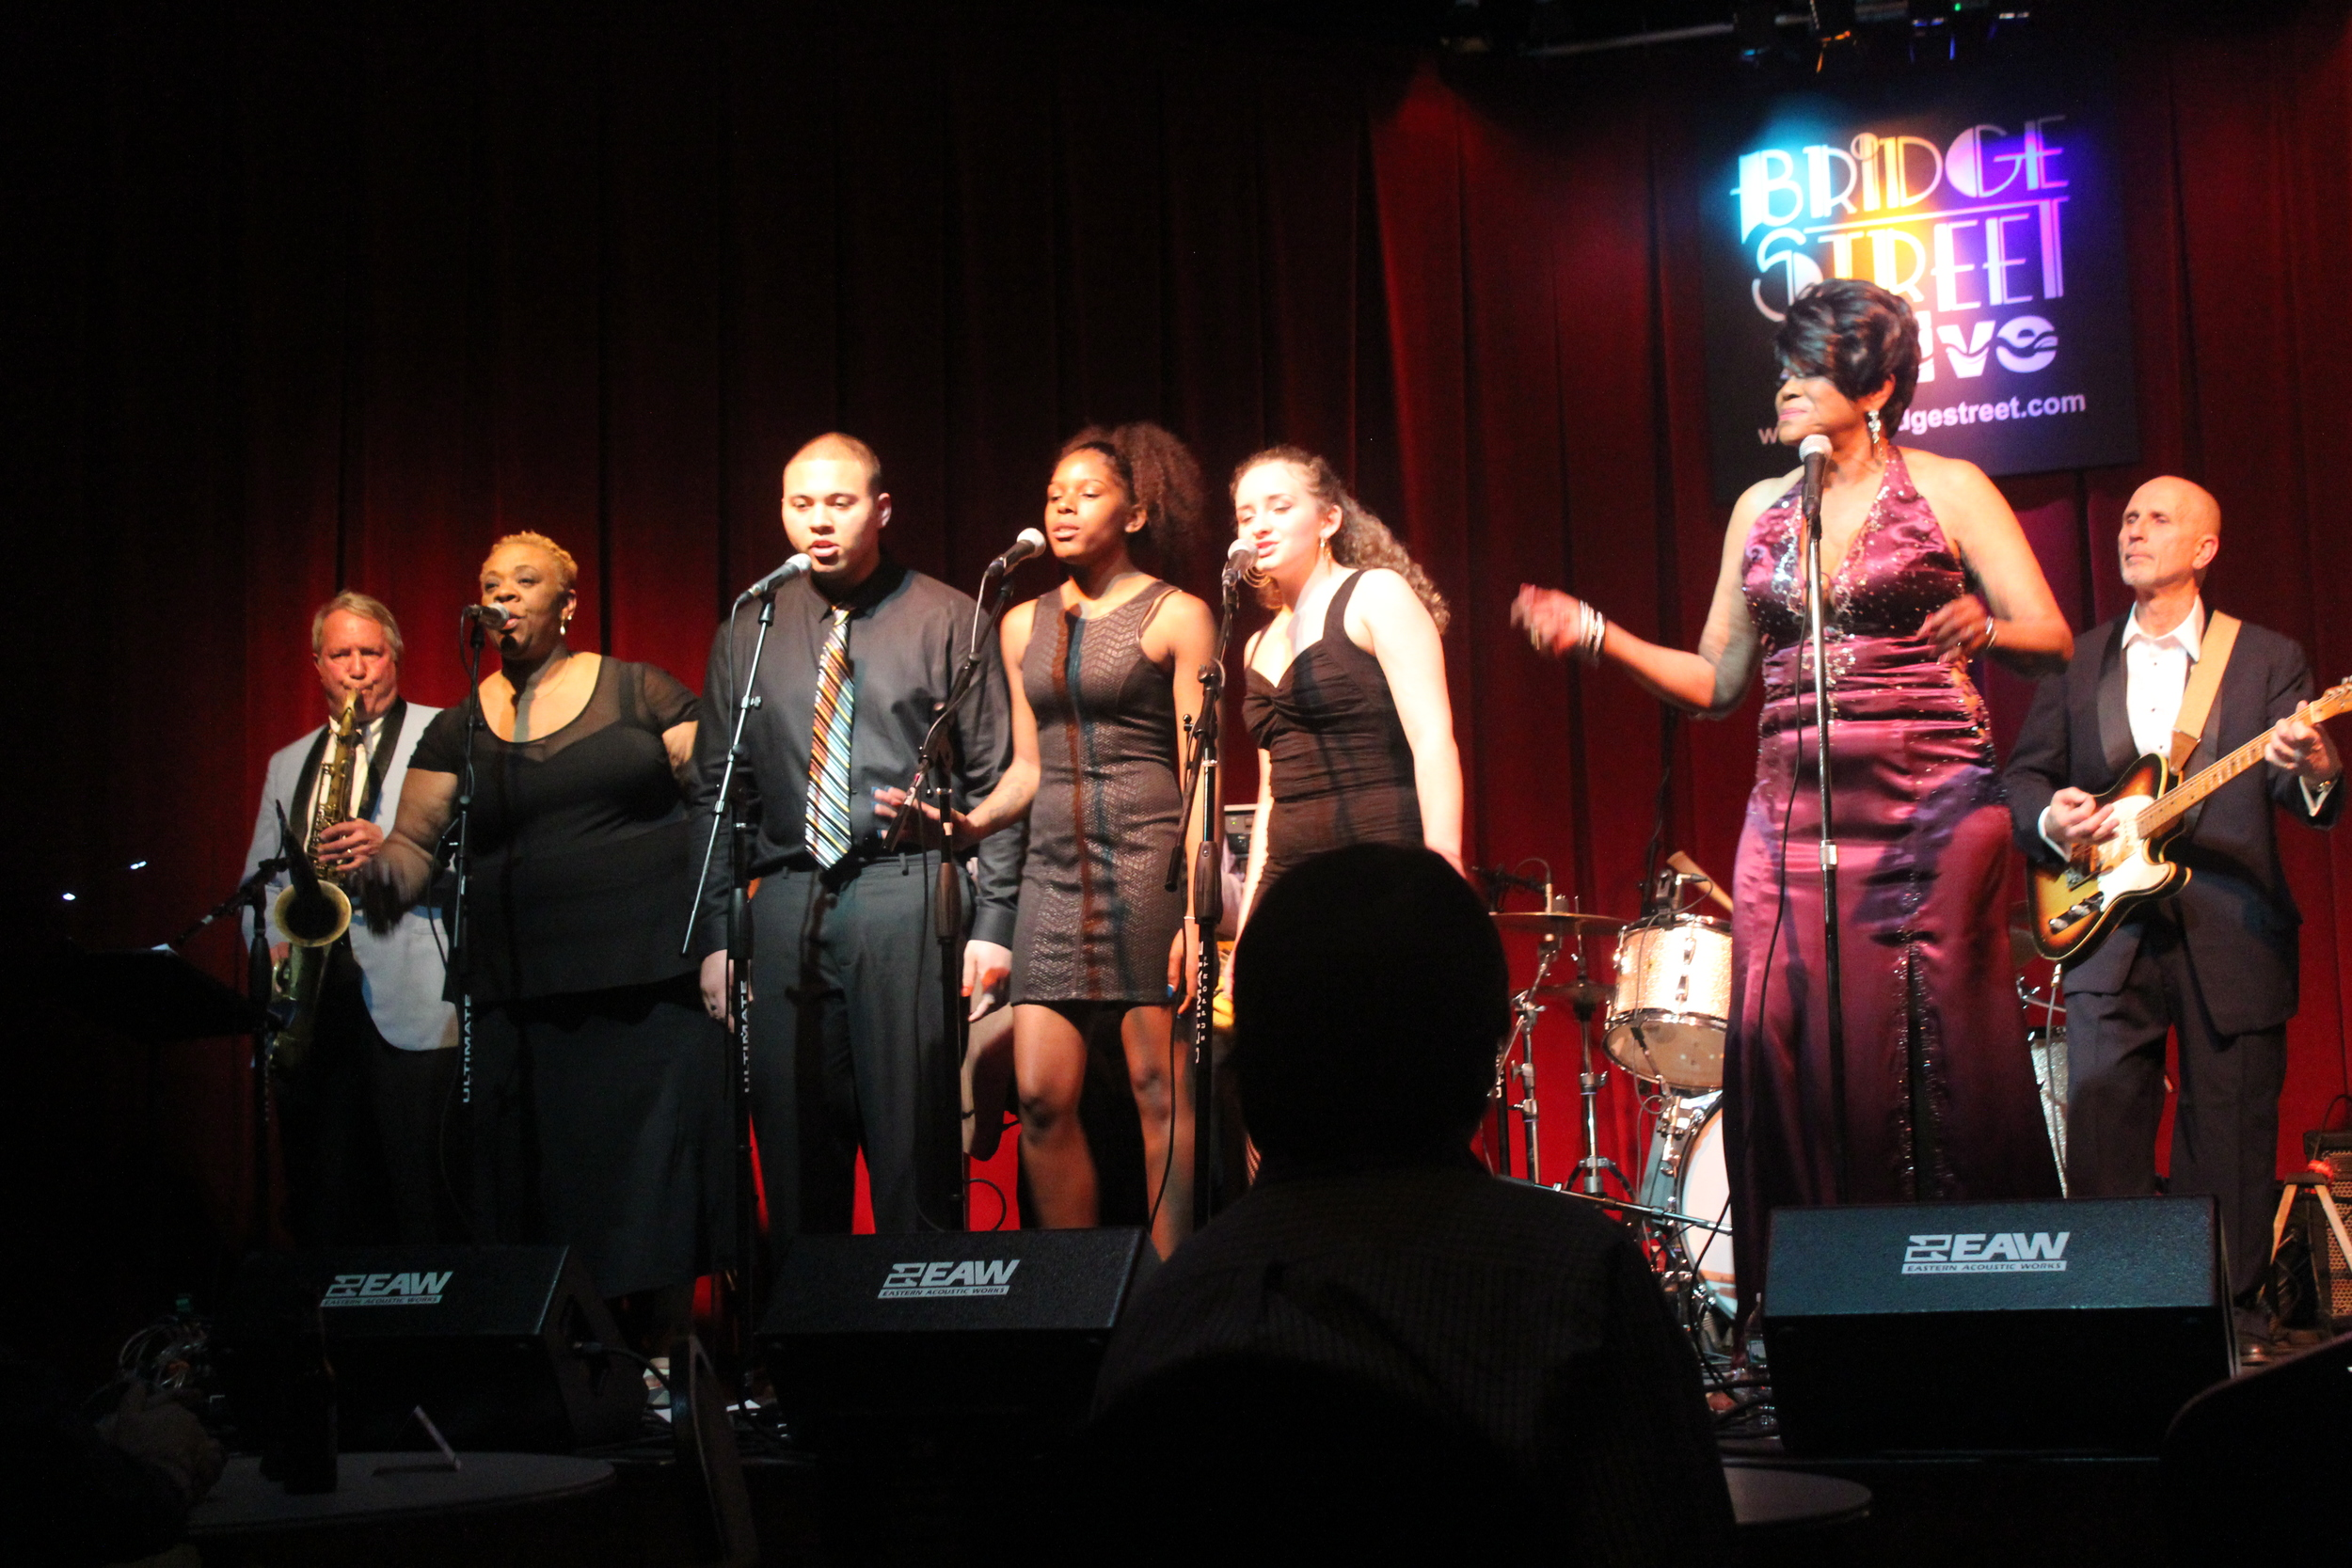 Betty Harris and the Crew at Bridge St Live.JPG